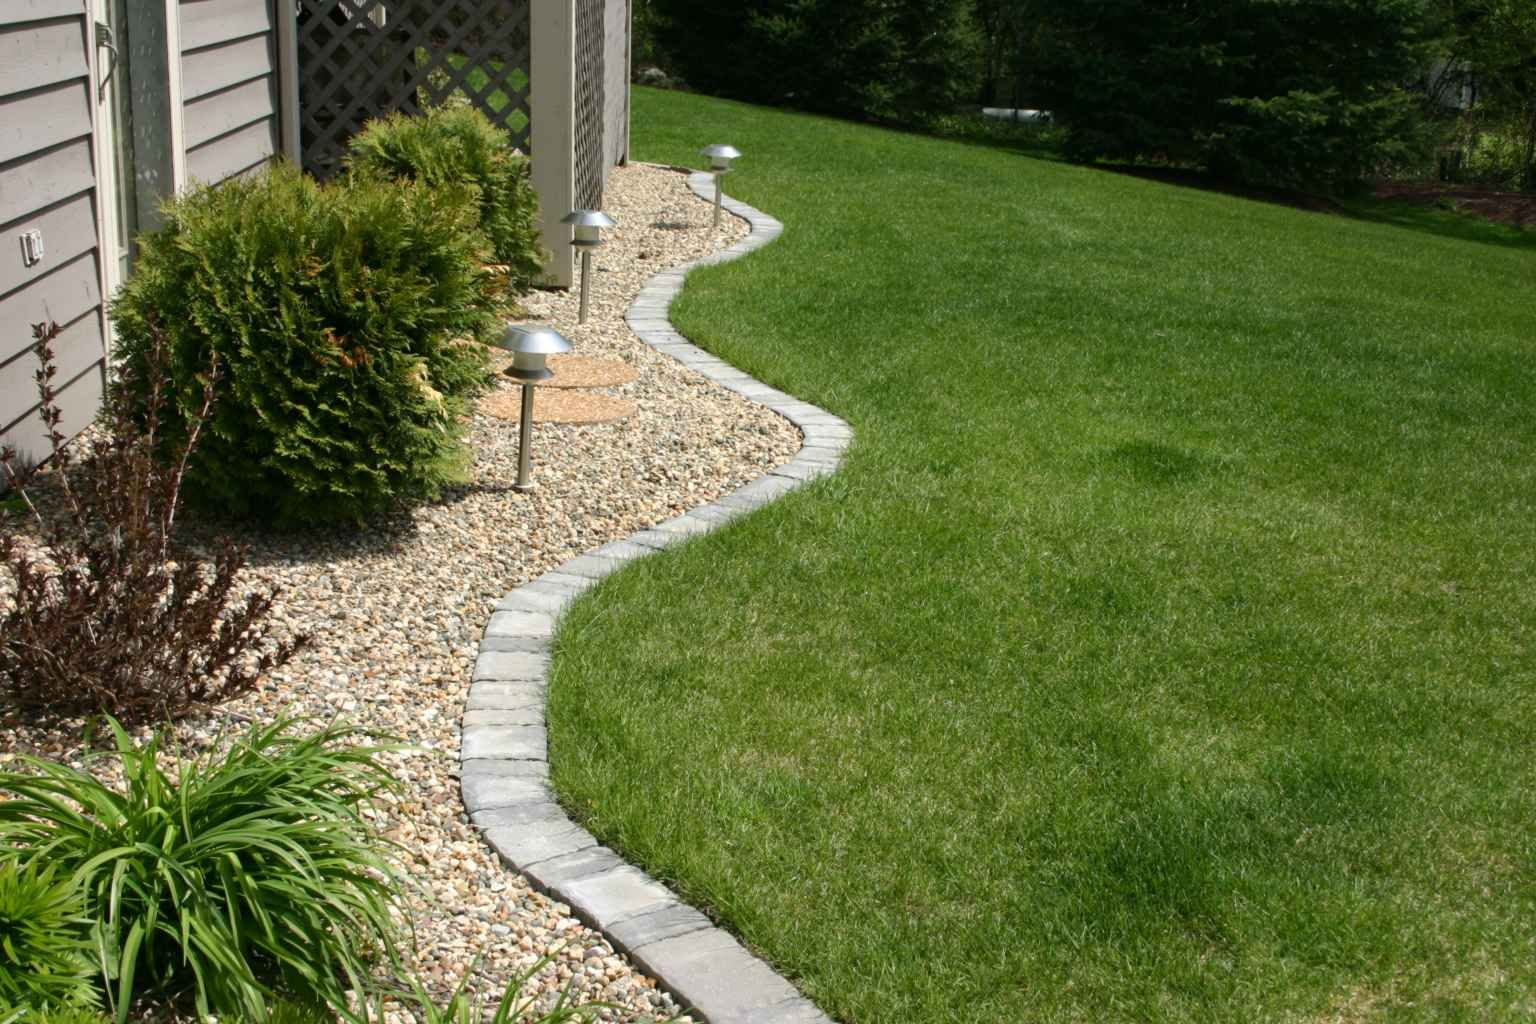 Lawn edging paver edging home pinterest gardens for Garden trim